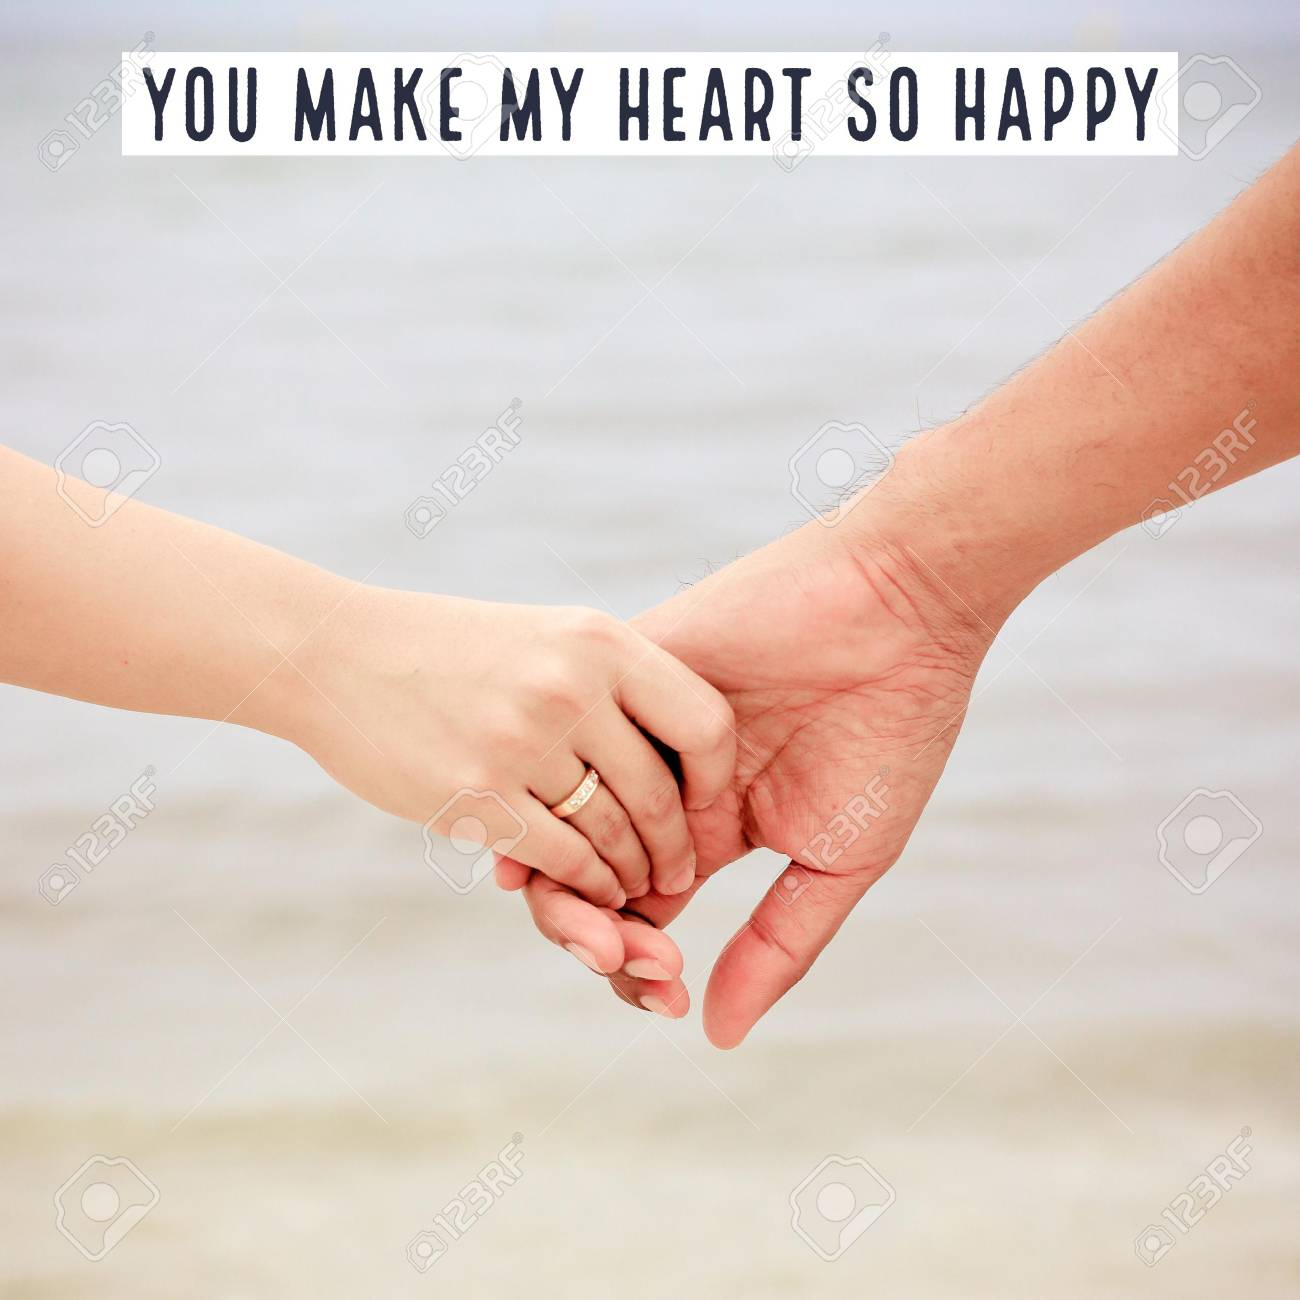 Inspirational motivation quote about love on couple holding hands